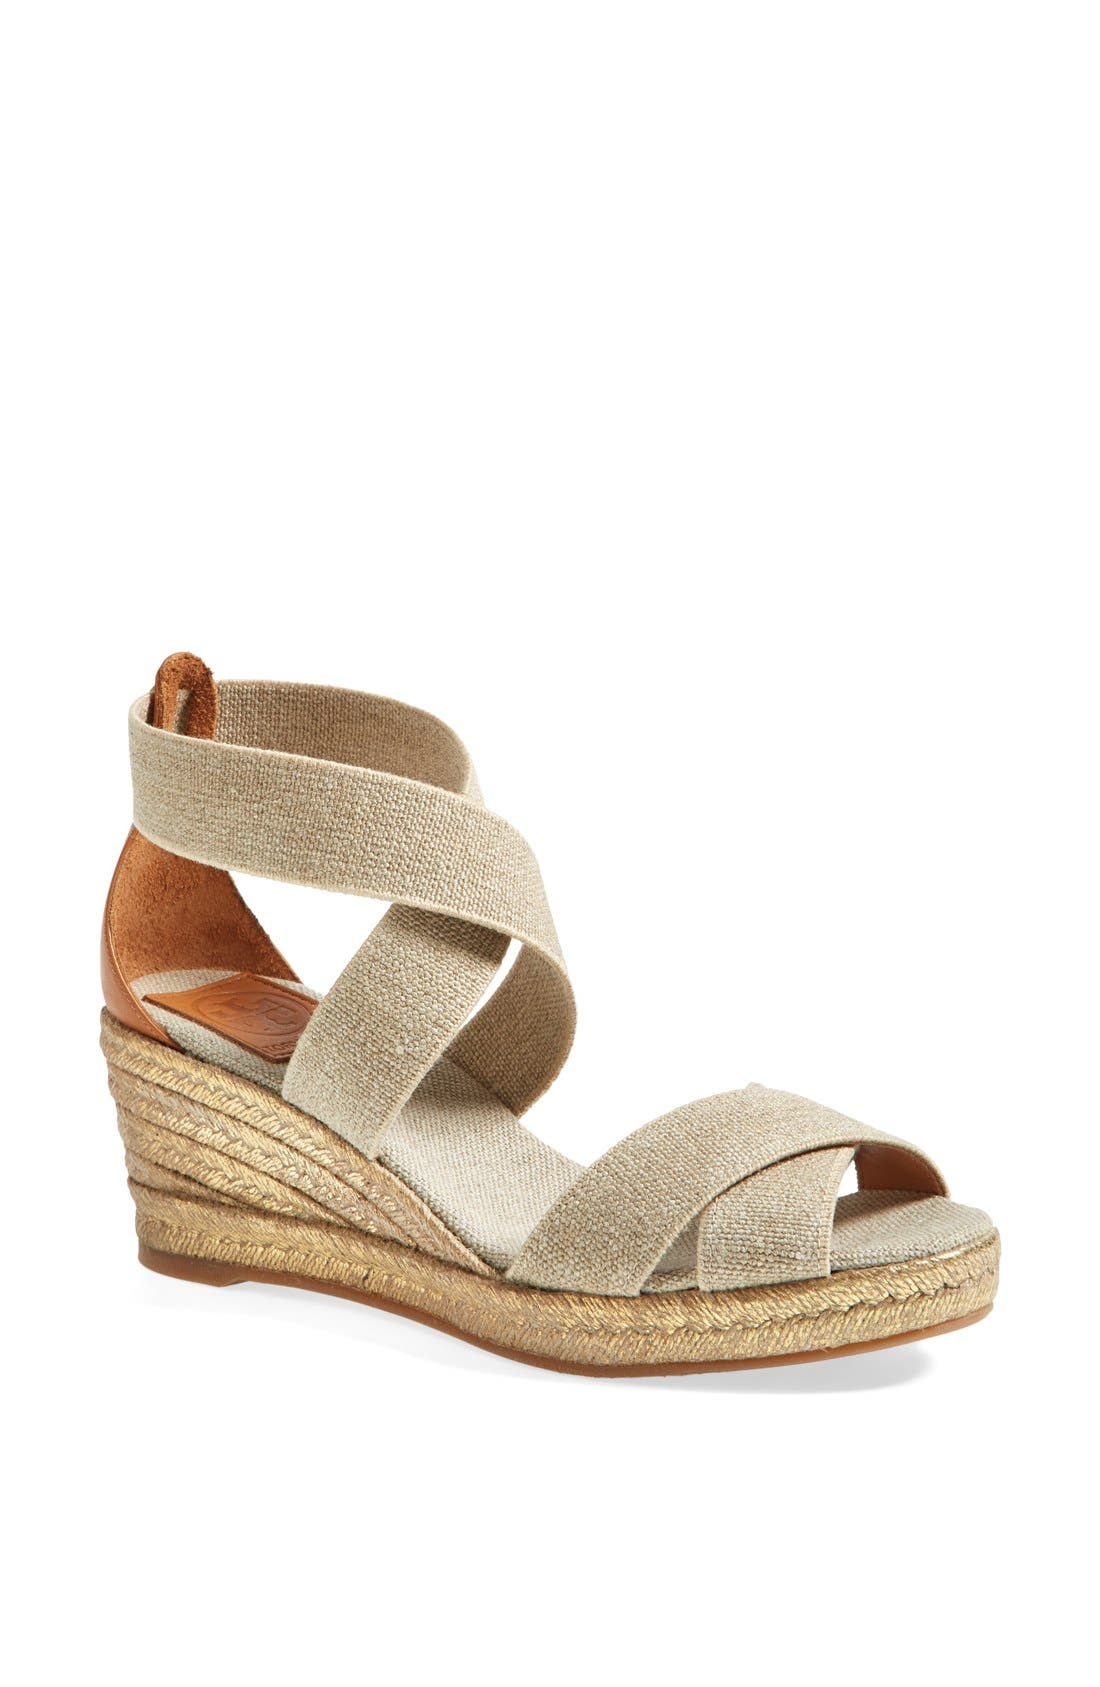 Main Image - Tory Burch 'Adonis' Sandal (Online Only)